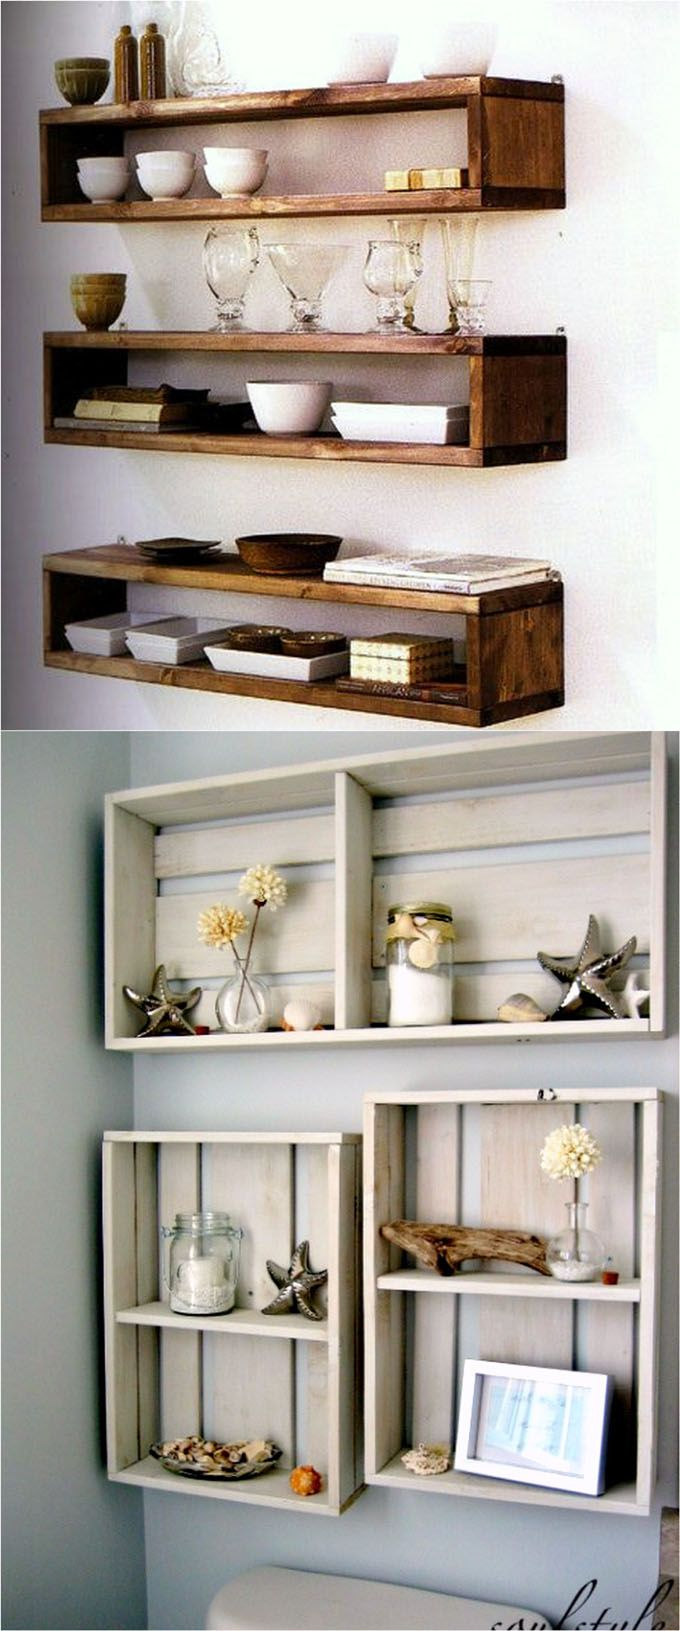 Shelves Design Best 25 Wall Shelves Ideas On Pinterest  Shelves Wall Shelving